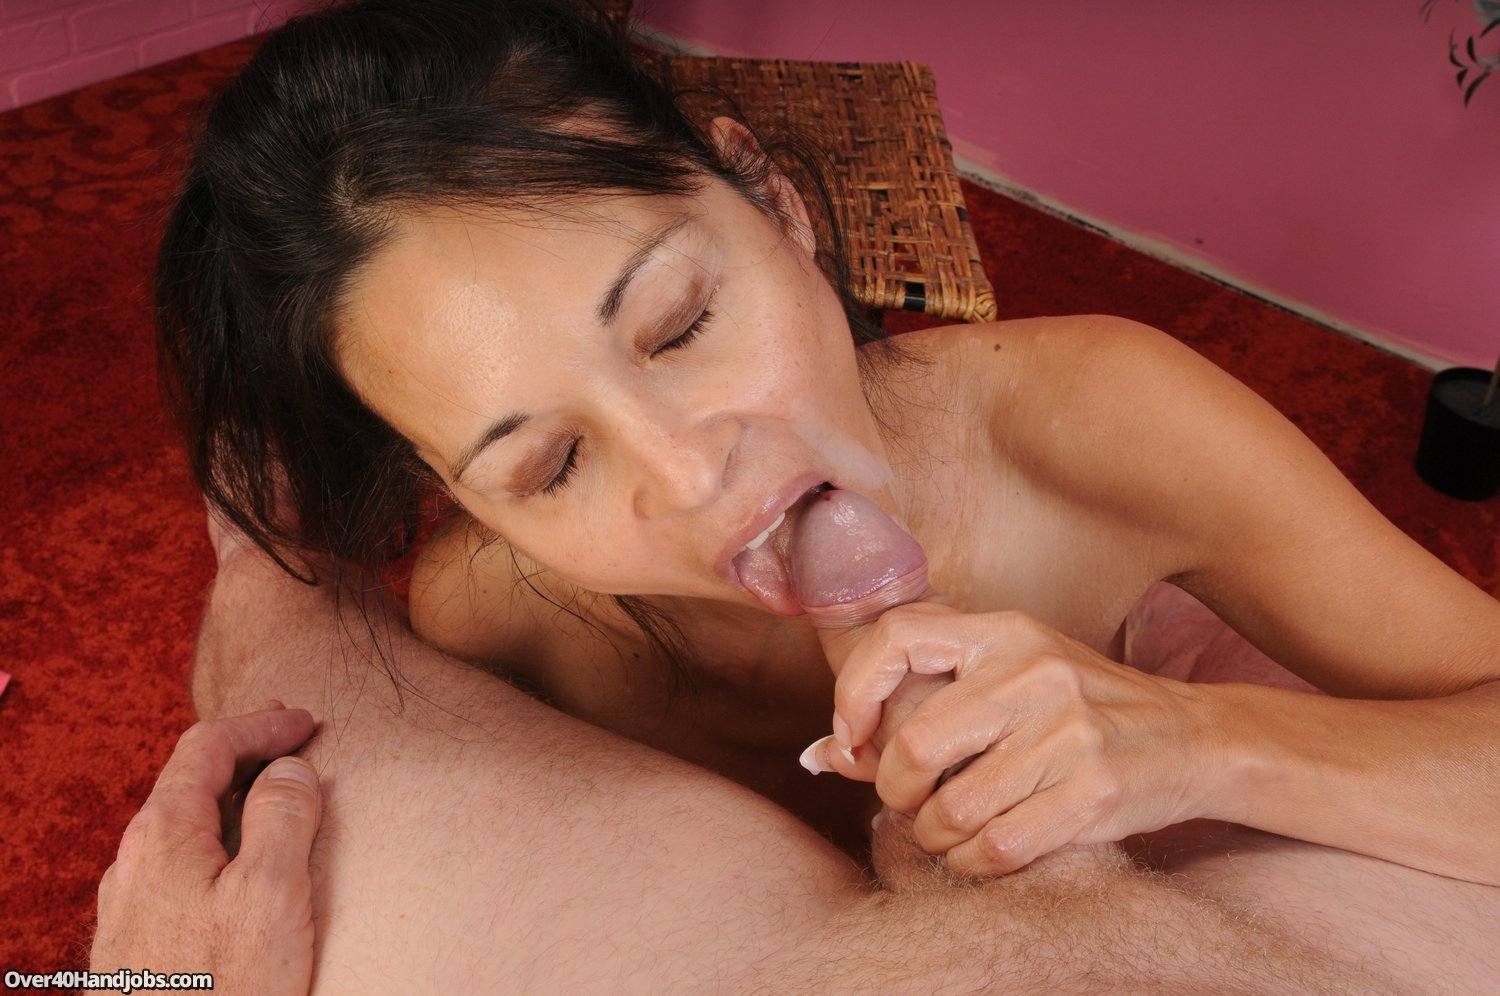 10 inch cock multiple orgasms